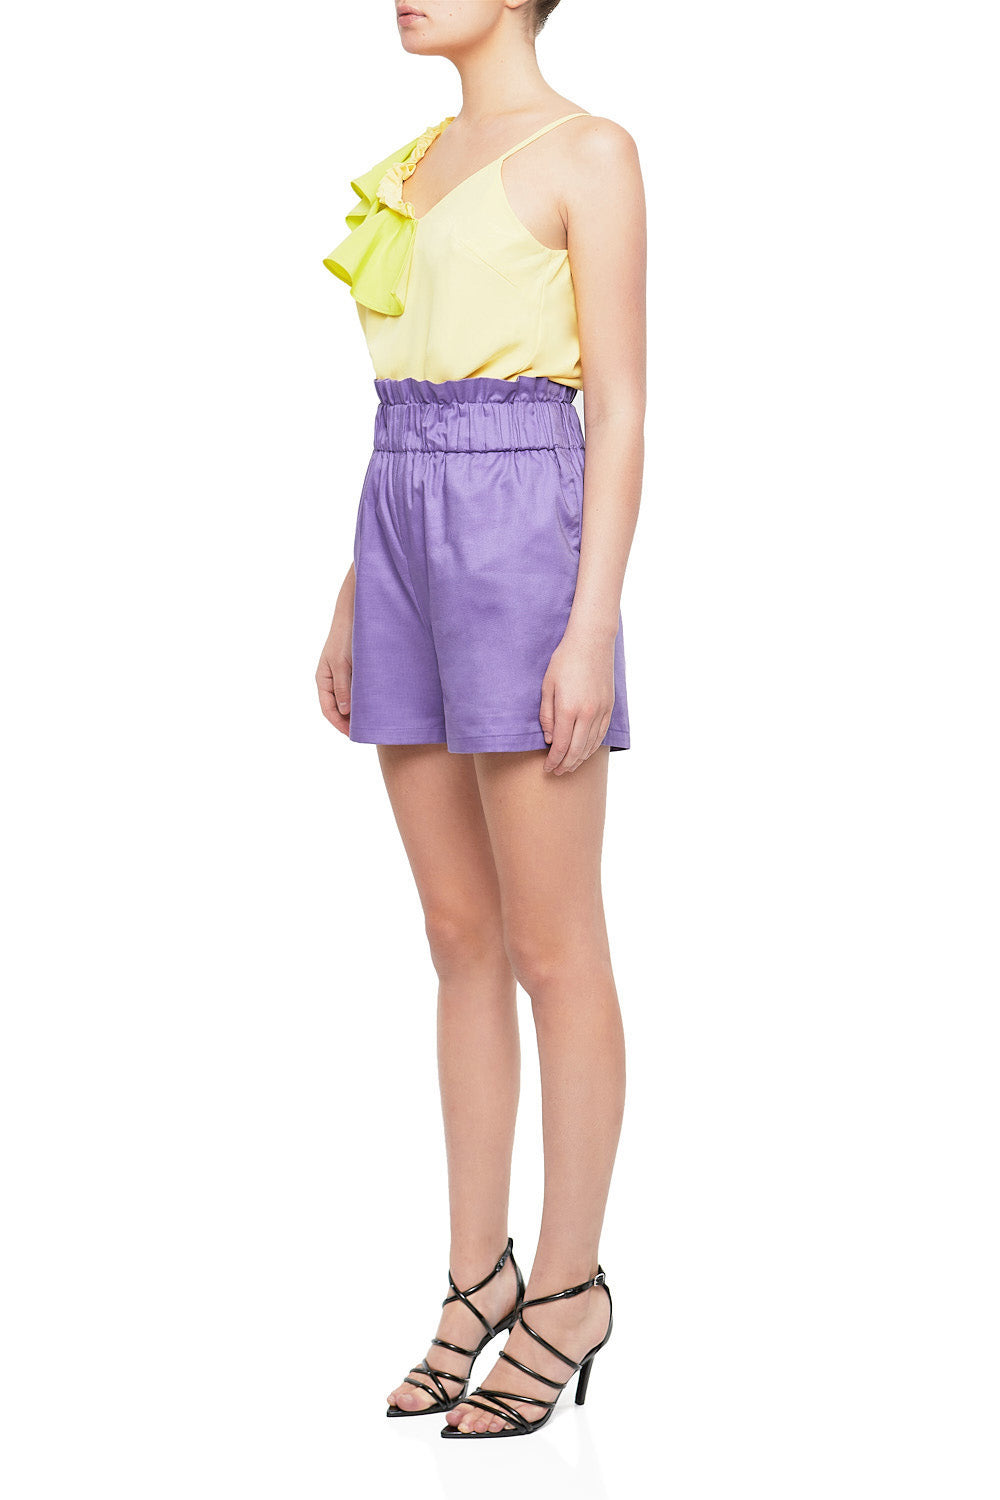 JOICE Cotton Boyfriend Short - HAUS OF SONG